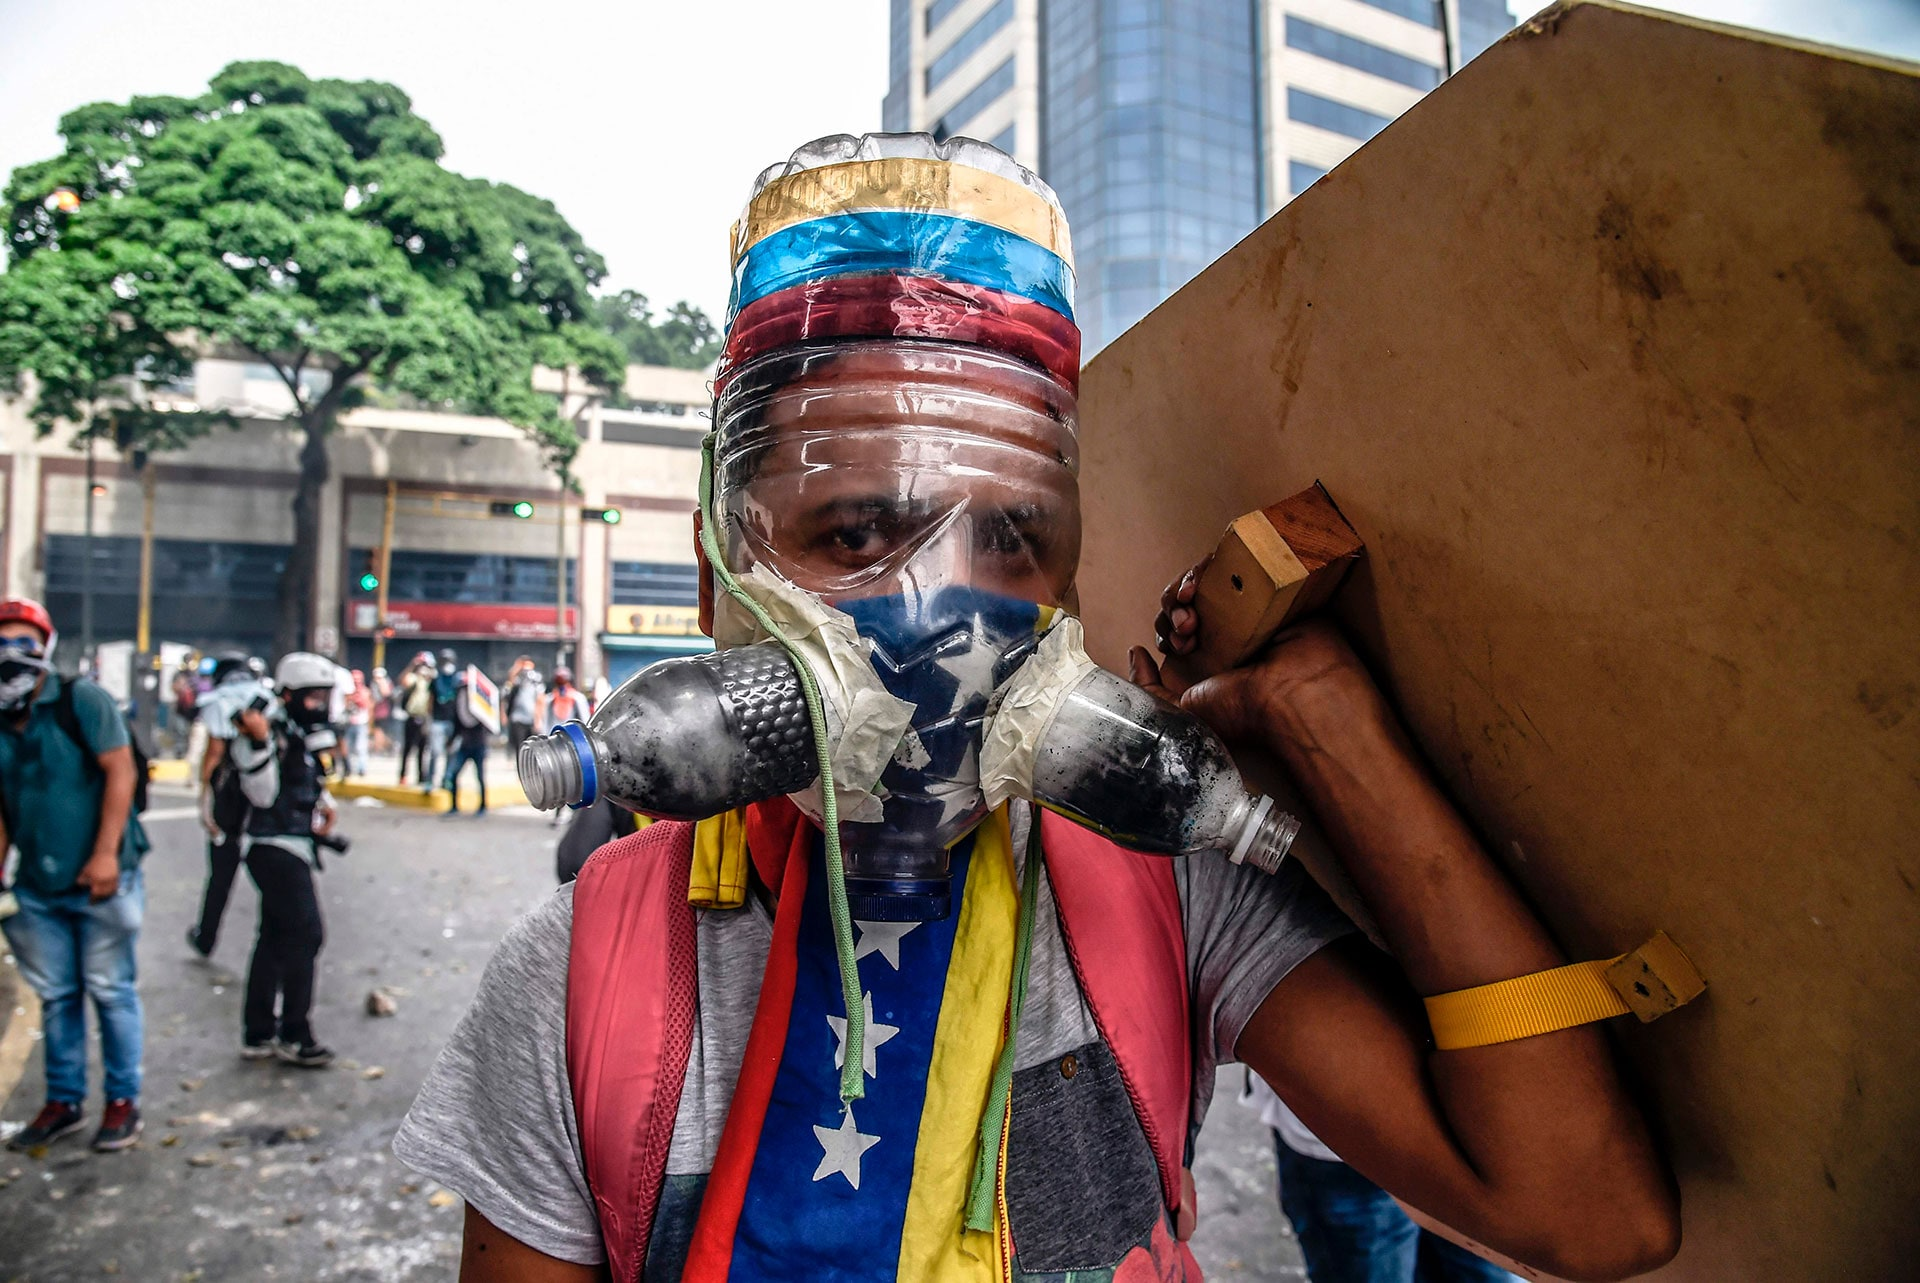 A Venezuelan opposition activist wearing a homemade gas mask